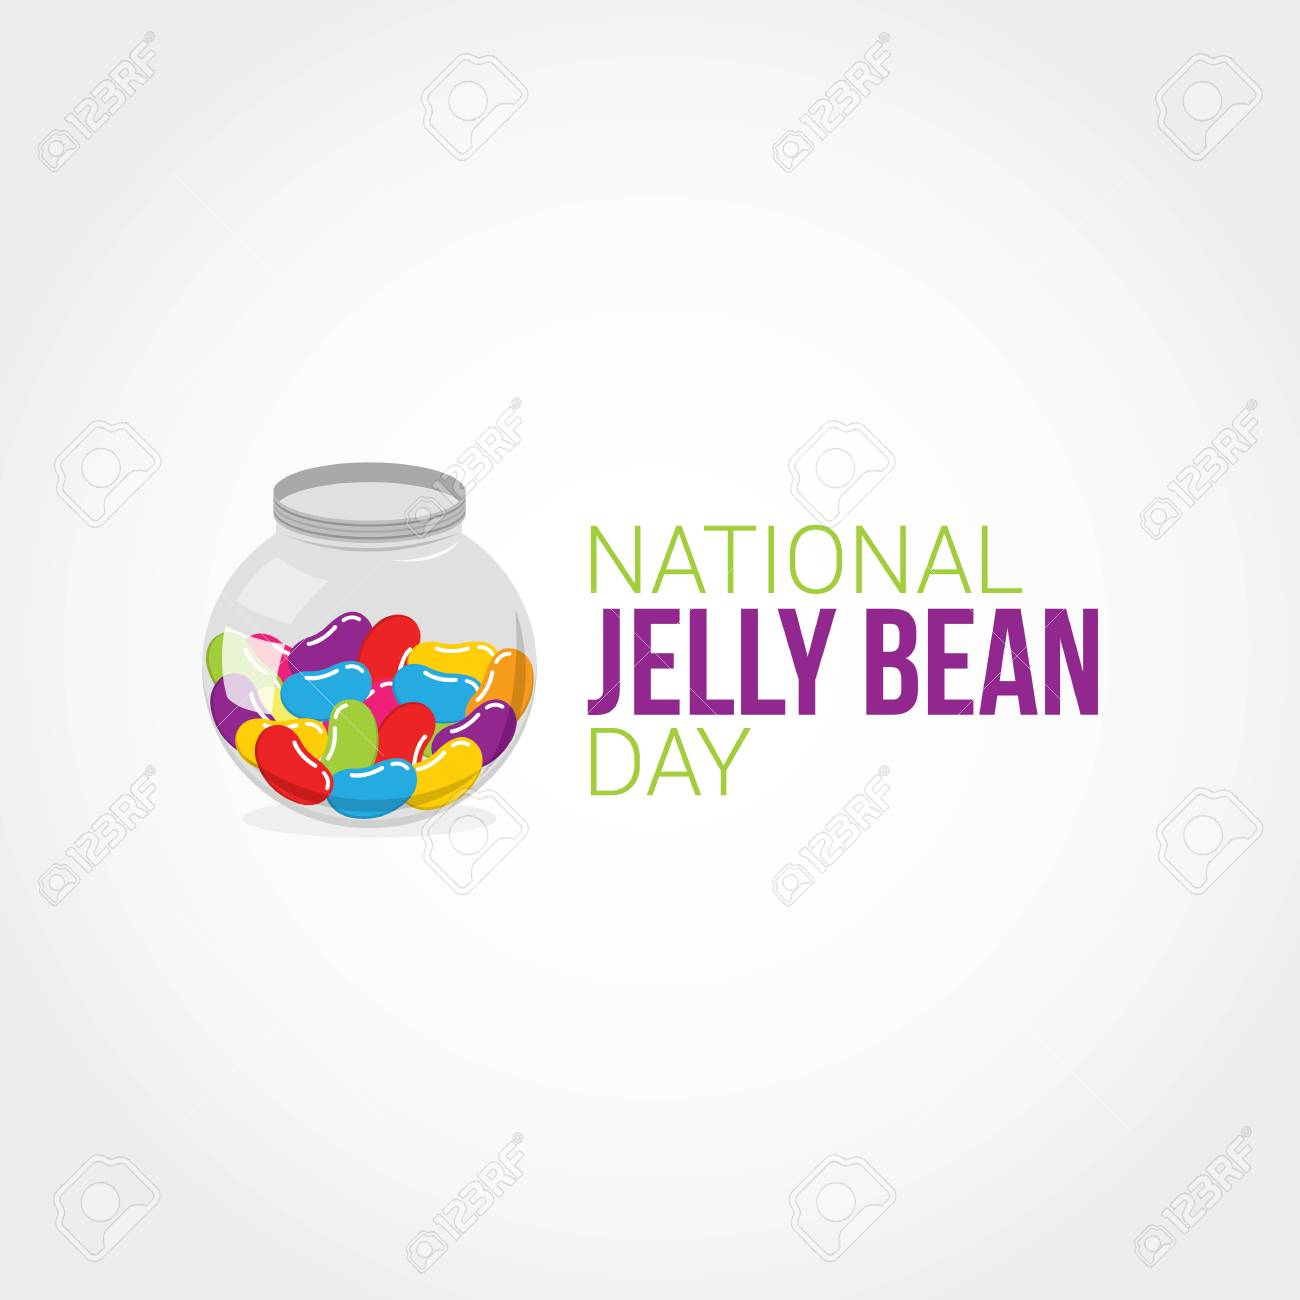 Colorful Jelly Beans Clip Art at Clker.com - vector clip art online,  royalty free & public domain